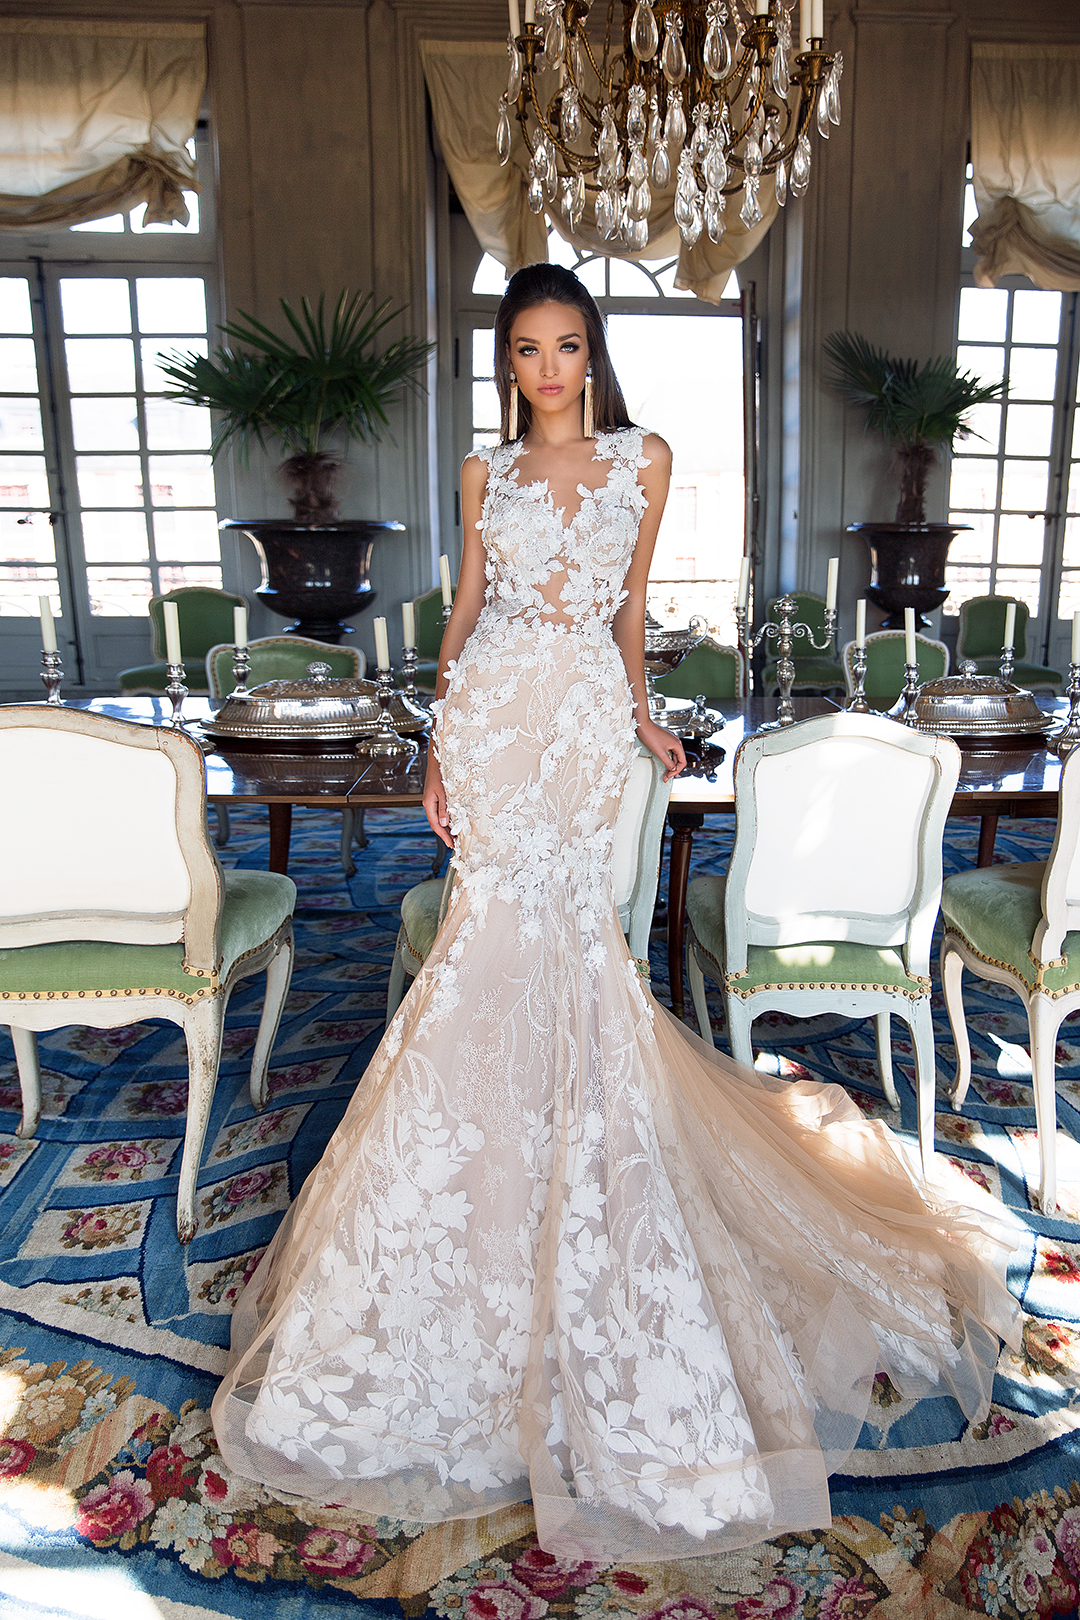 Aora - nudeBlushing Bridal Boutique -MillaNova-once in the palace-lace tulle-haute couture-illusion-bridal-wedding-wedding gown-woodbridge-vaughan-mississauga-toronto-gta-ontario-canada